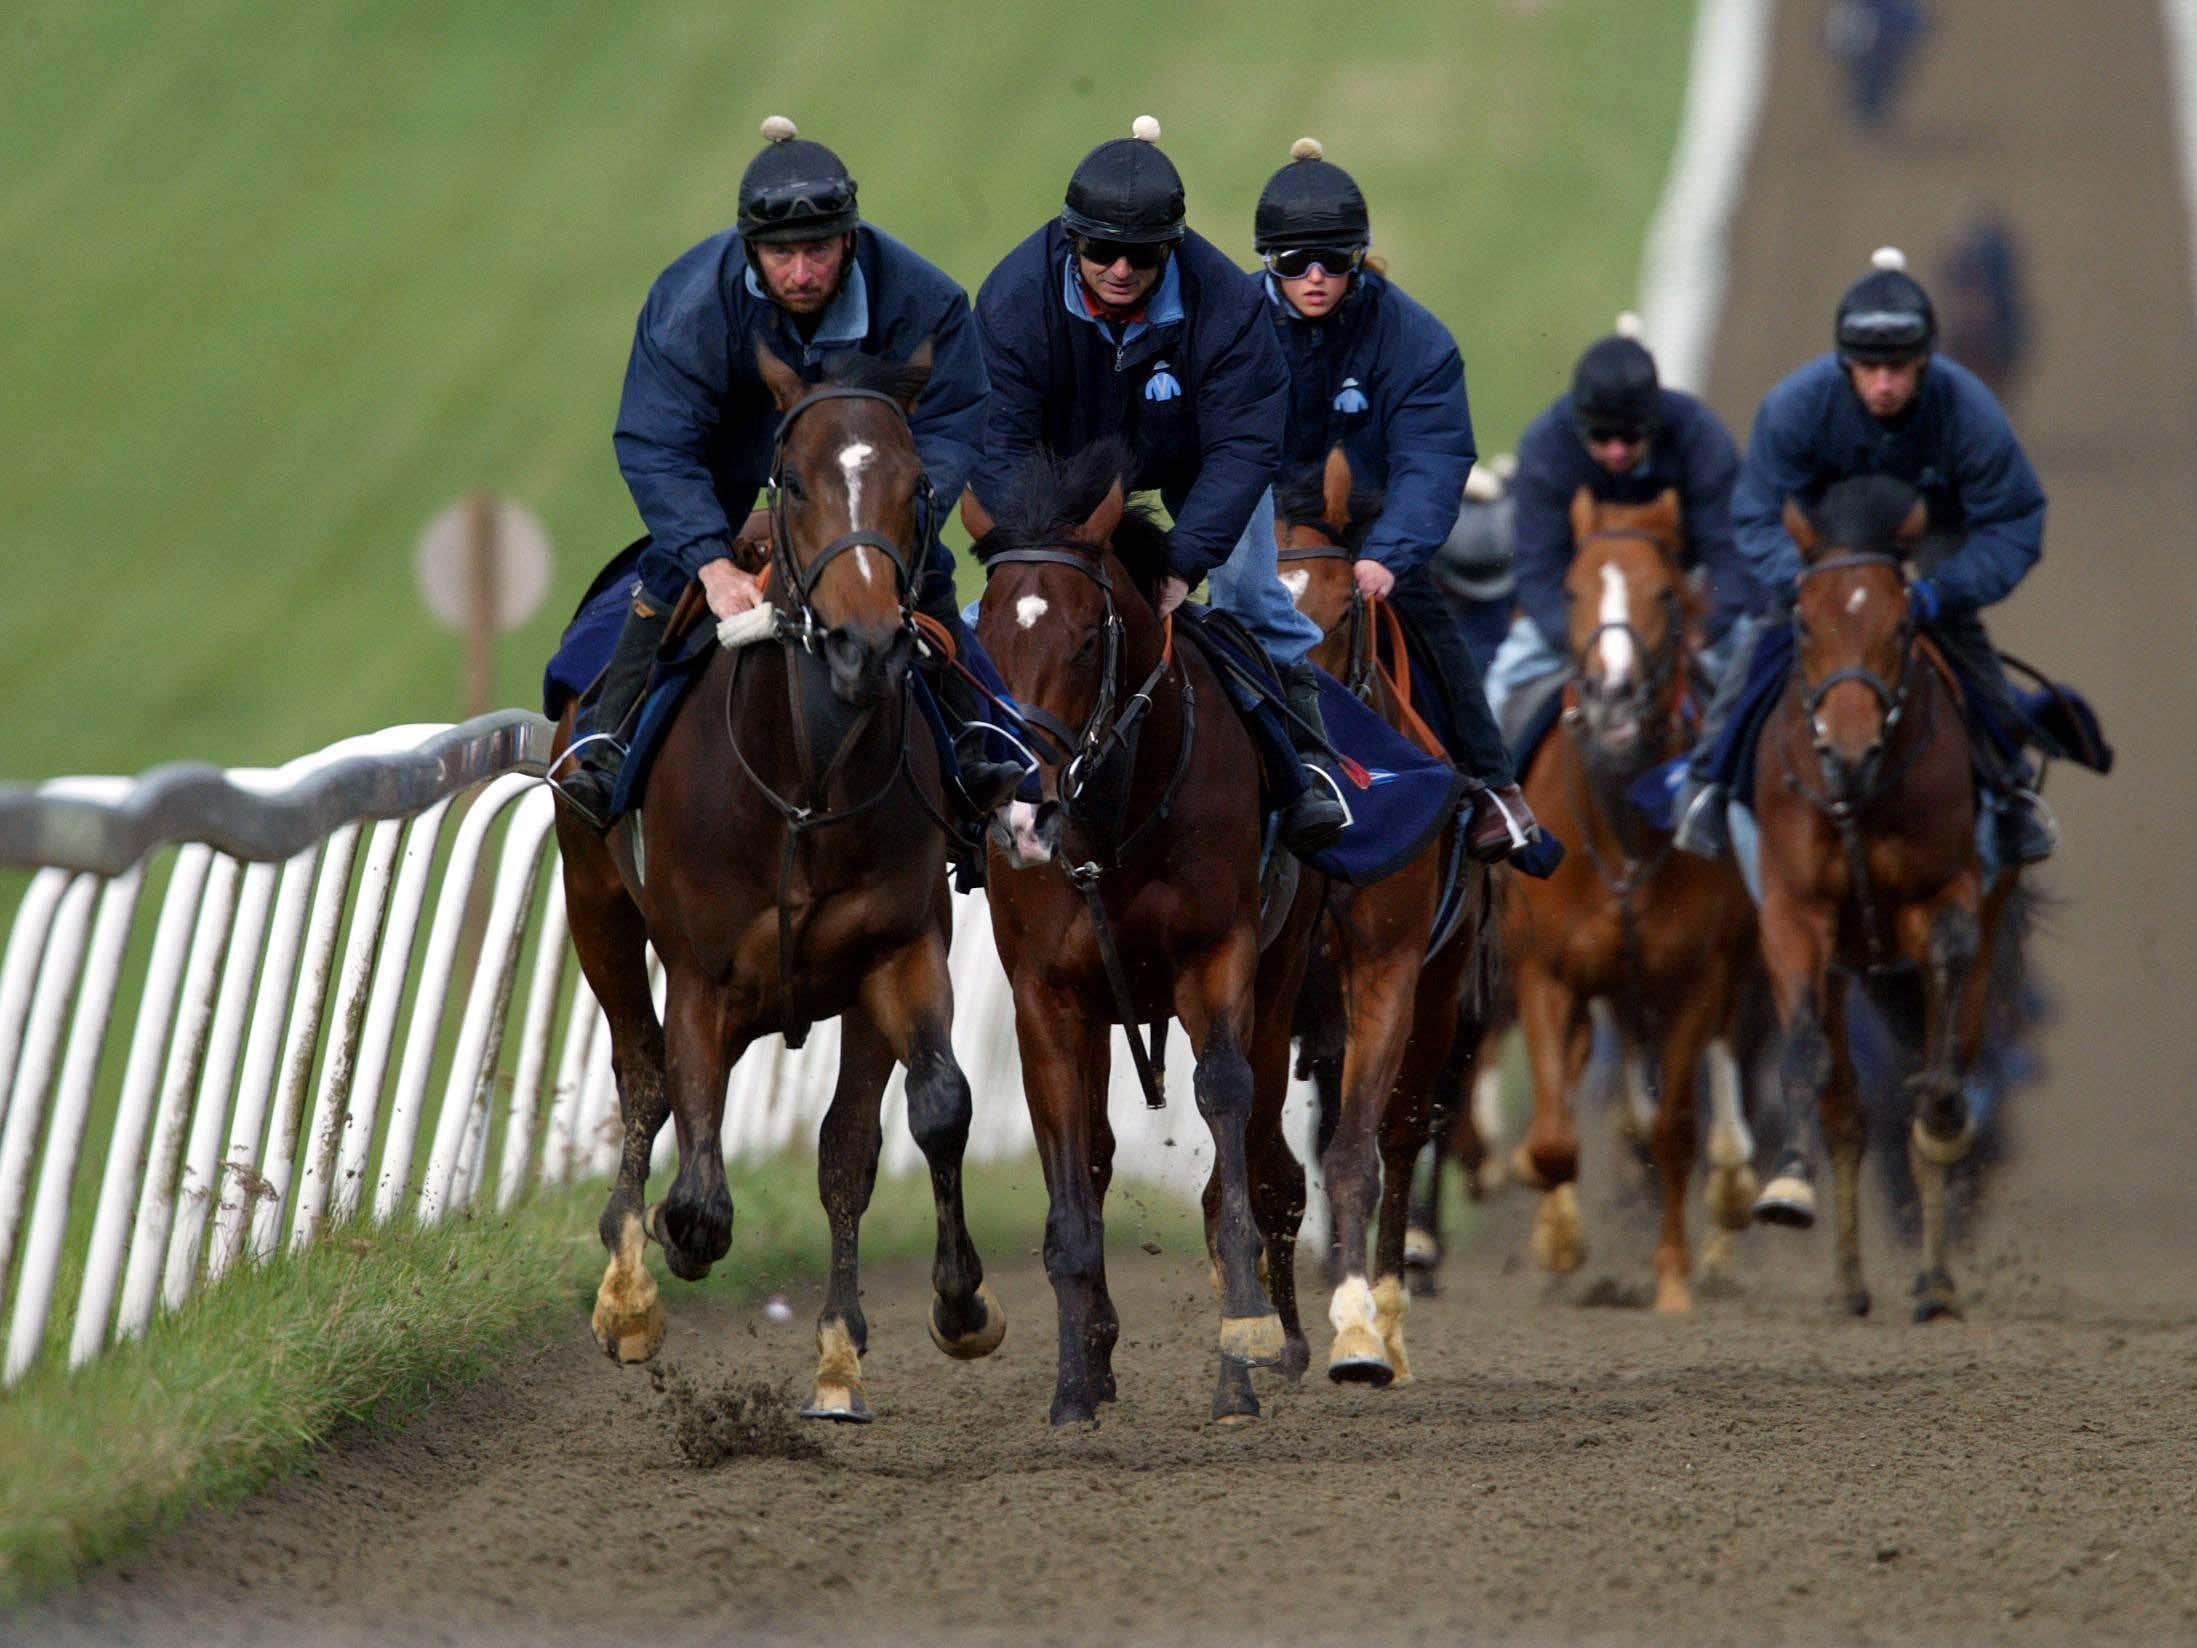 The National Trainers Federation has advised that racehorse gallops should continue, adhering to strict Government advice during the coronavirus outbreak (Andrew Parsons/PA)